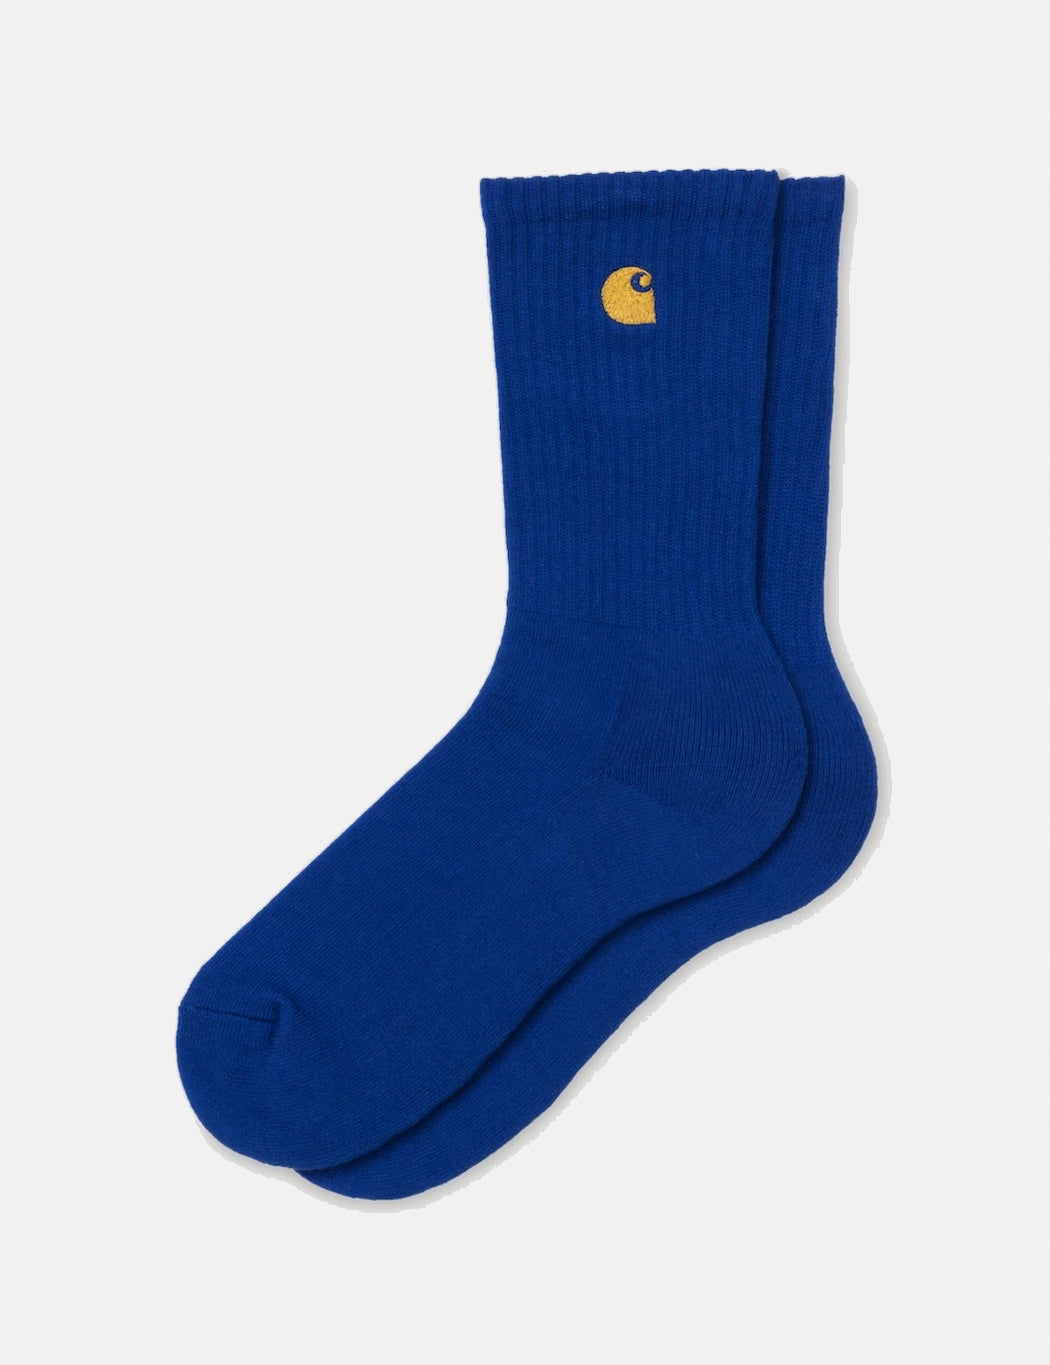 Carhartt-WIP Chase Socks - Thunder Blue/Gold | URBAN EXCESS.